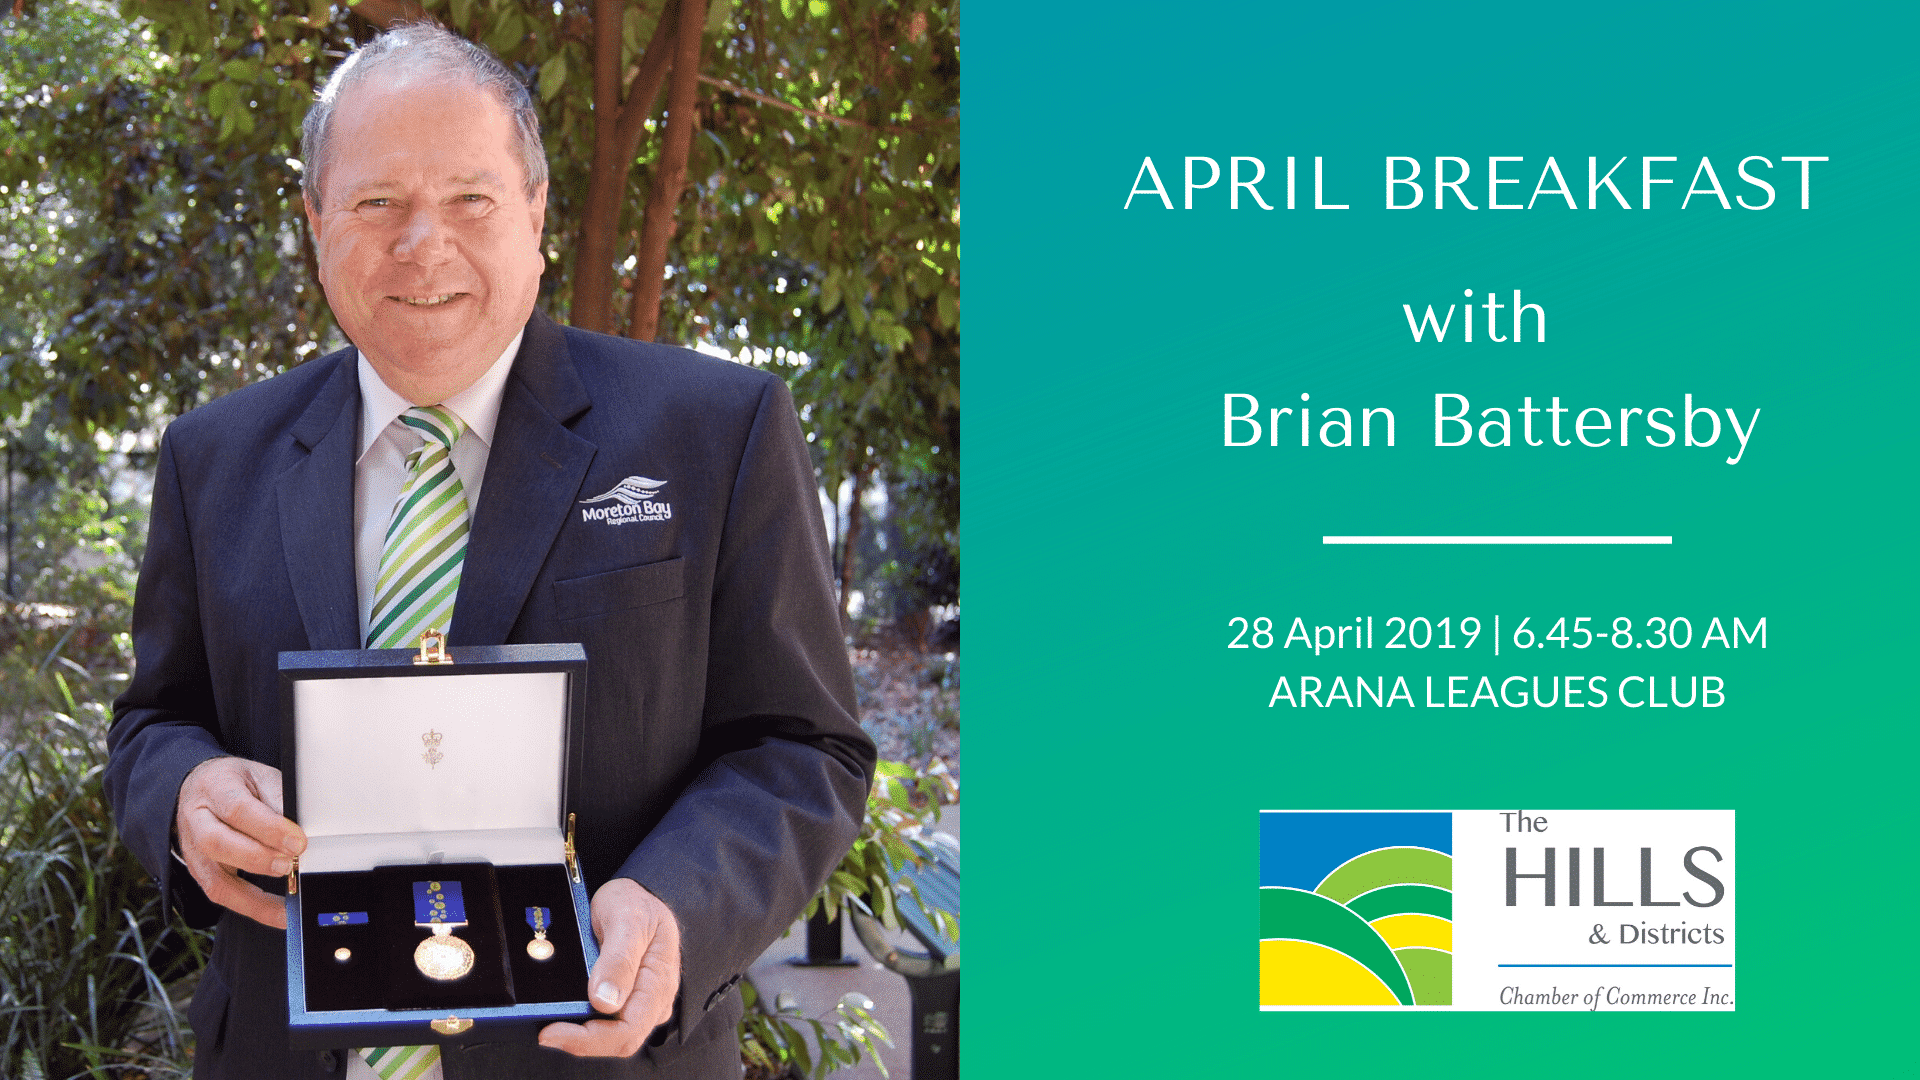 April Breakfast with Brian Battersby